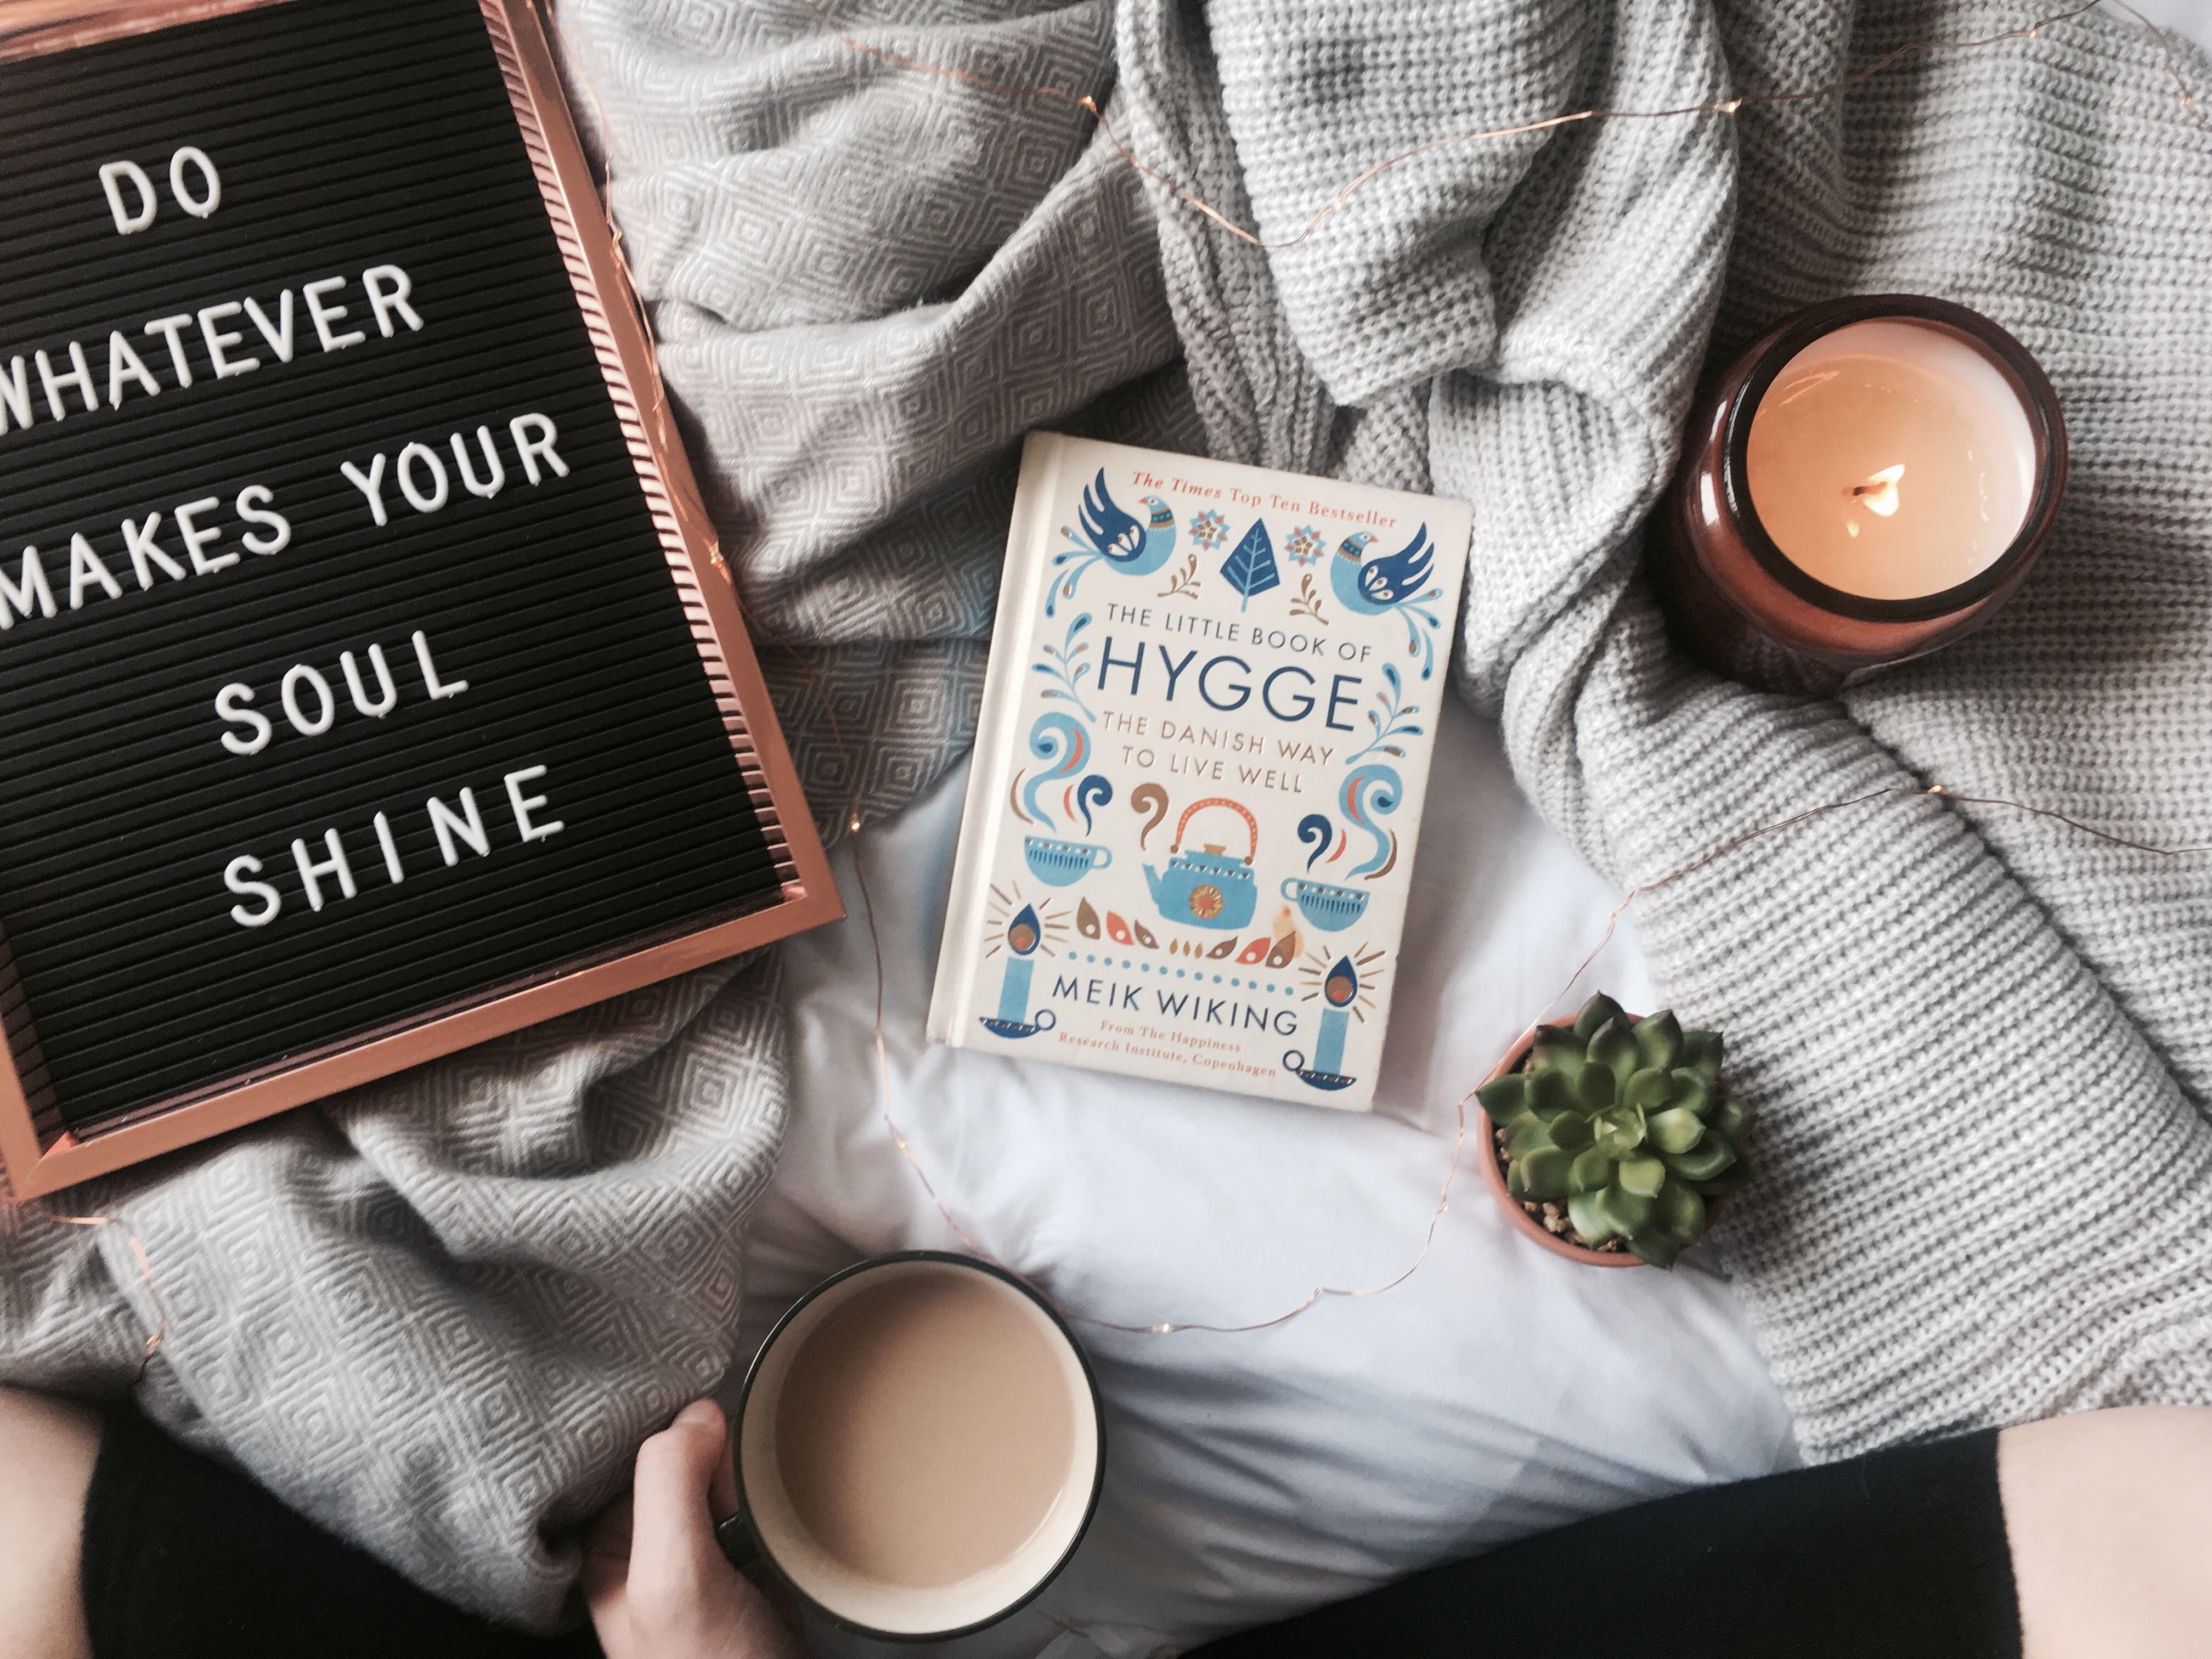 Cozy Self-Care With A Little Hygge